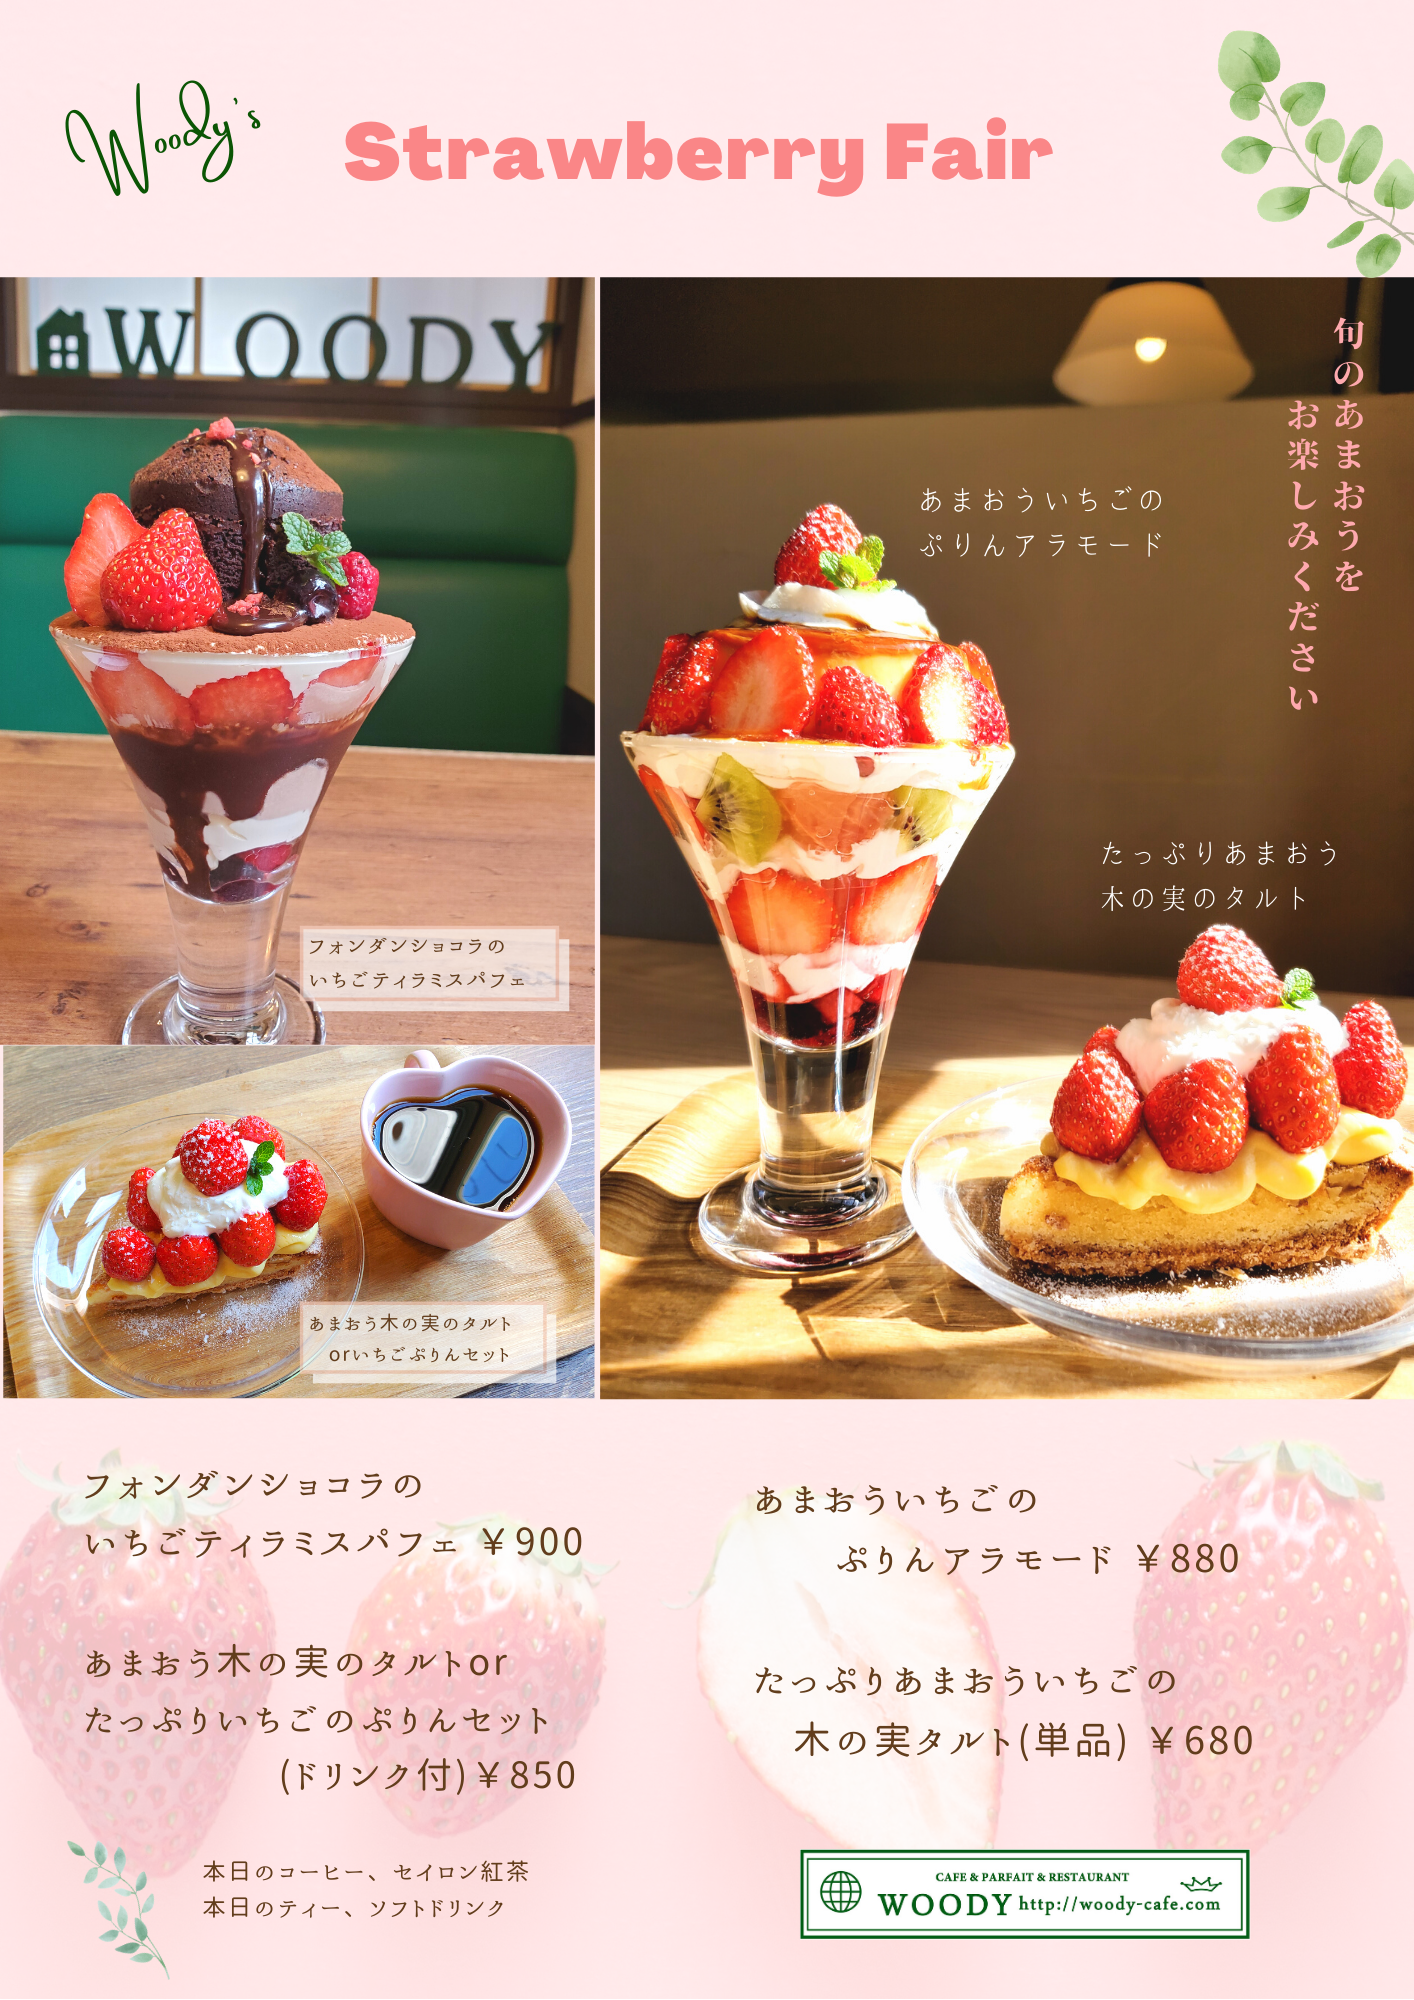 Strawberry Sweets Fair 2021のイメージ